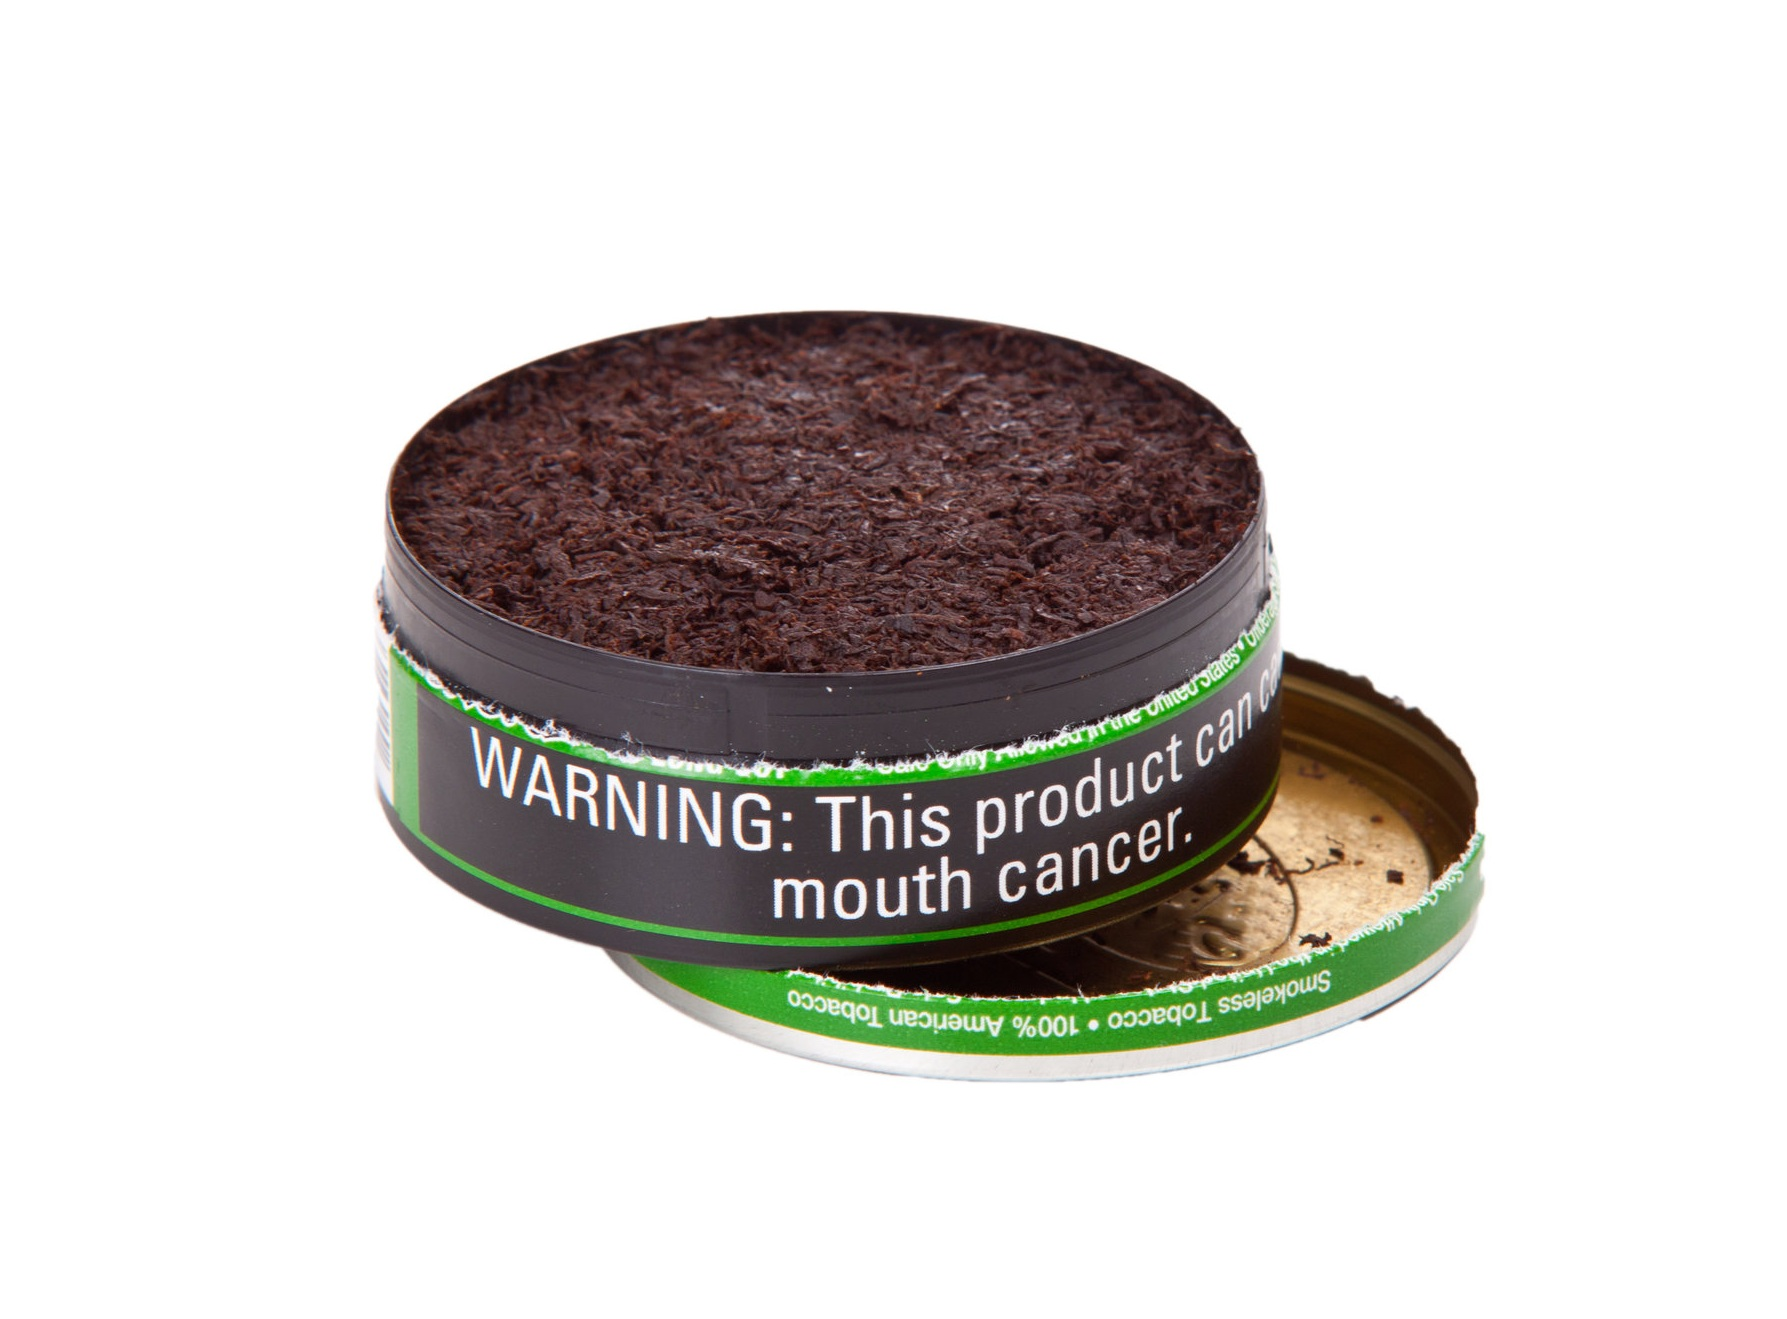 Why quit dip, chew and snuff? - Chew tobacco can cause receding gums, dental problems and even oral cancers. They're also addictive, but the QuitLine can help you learn more about chew, and quit when you're ready.